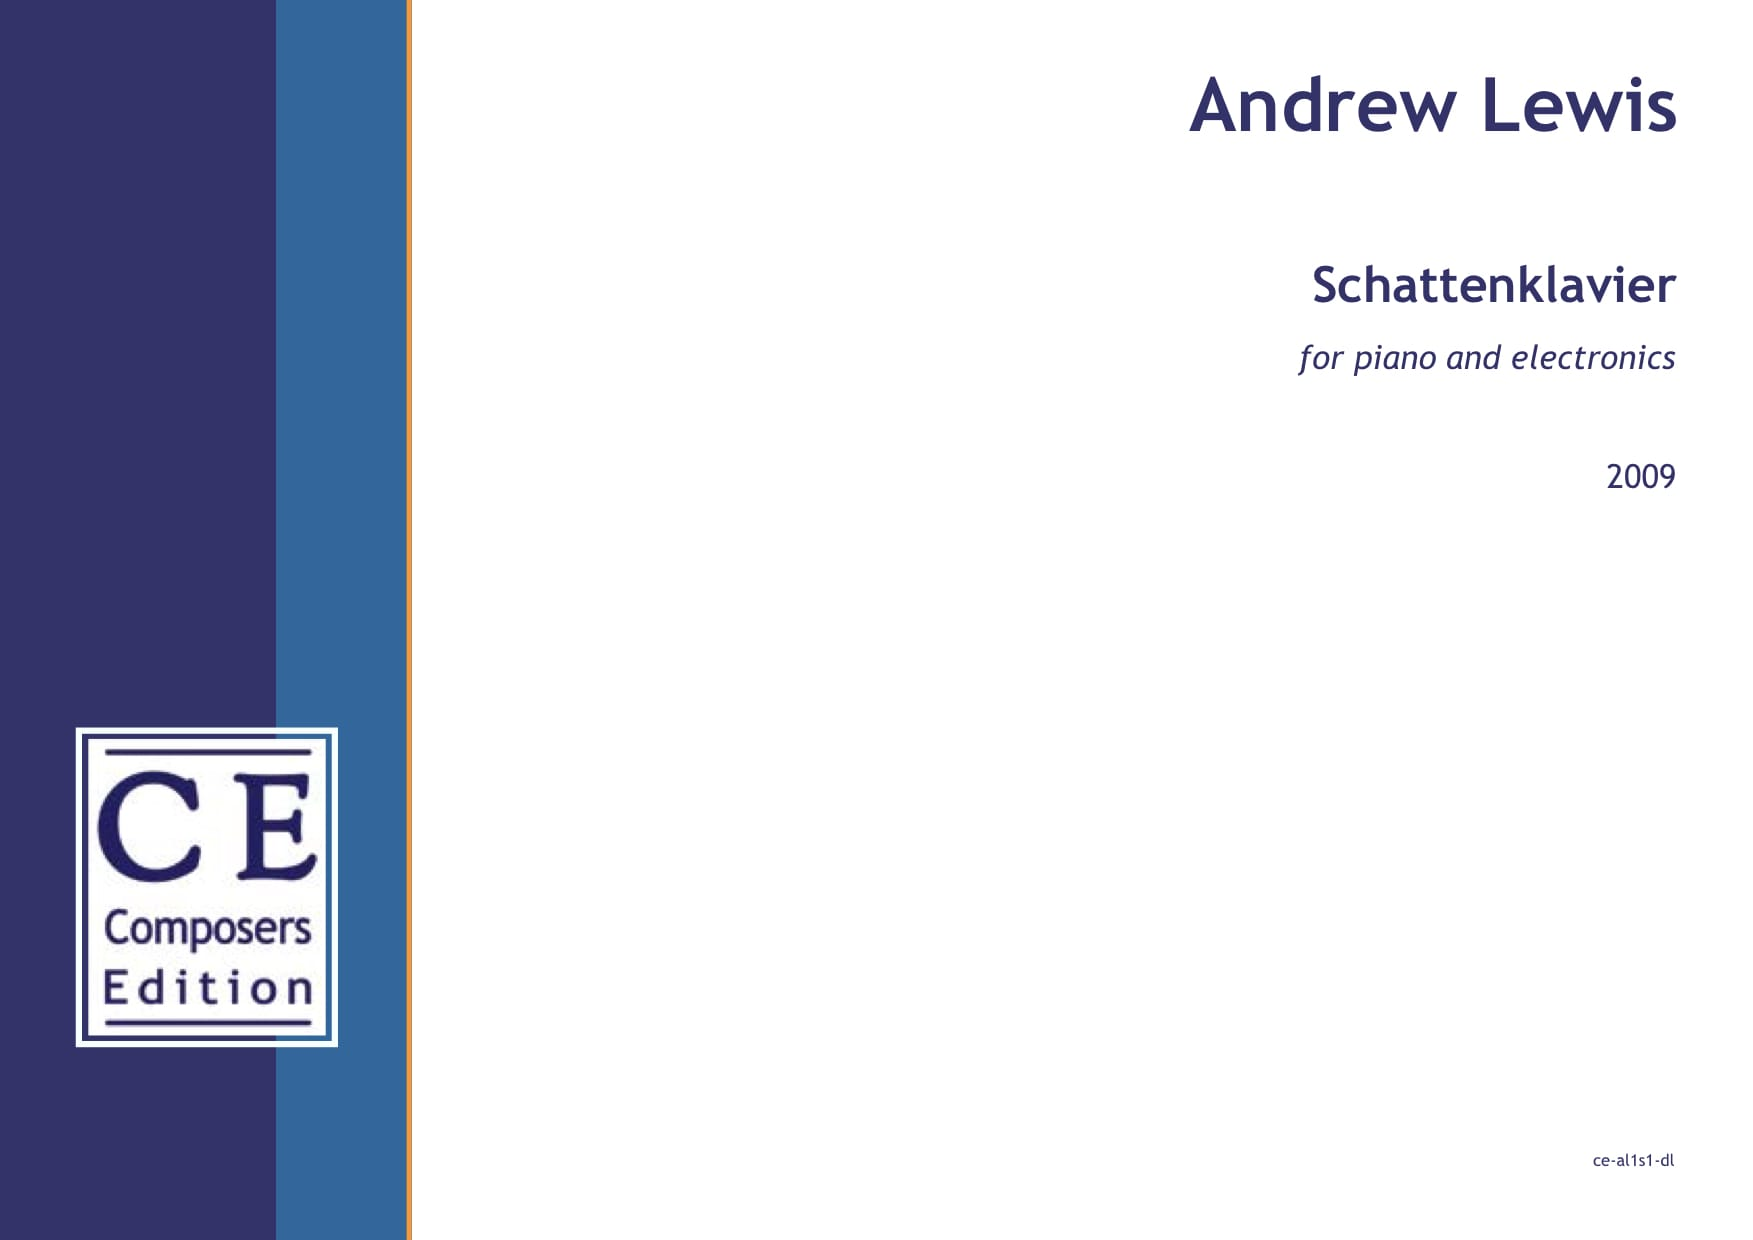 Andrew Lewis: Schattenklavier for piano and electronics